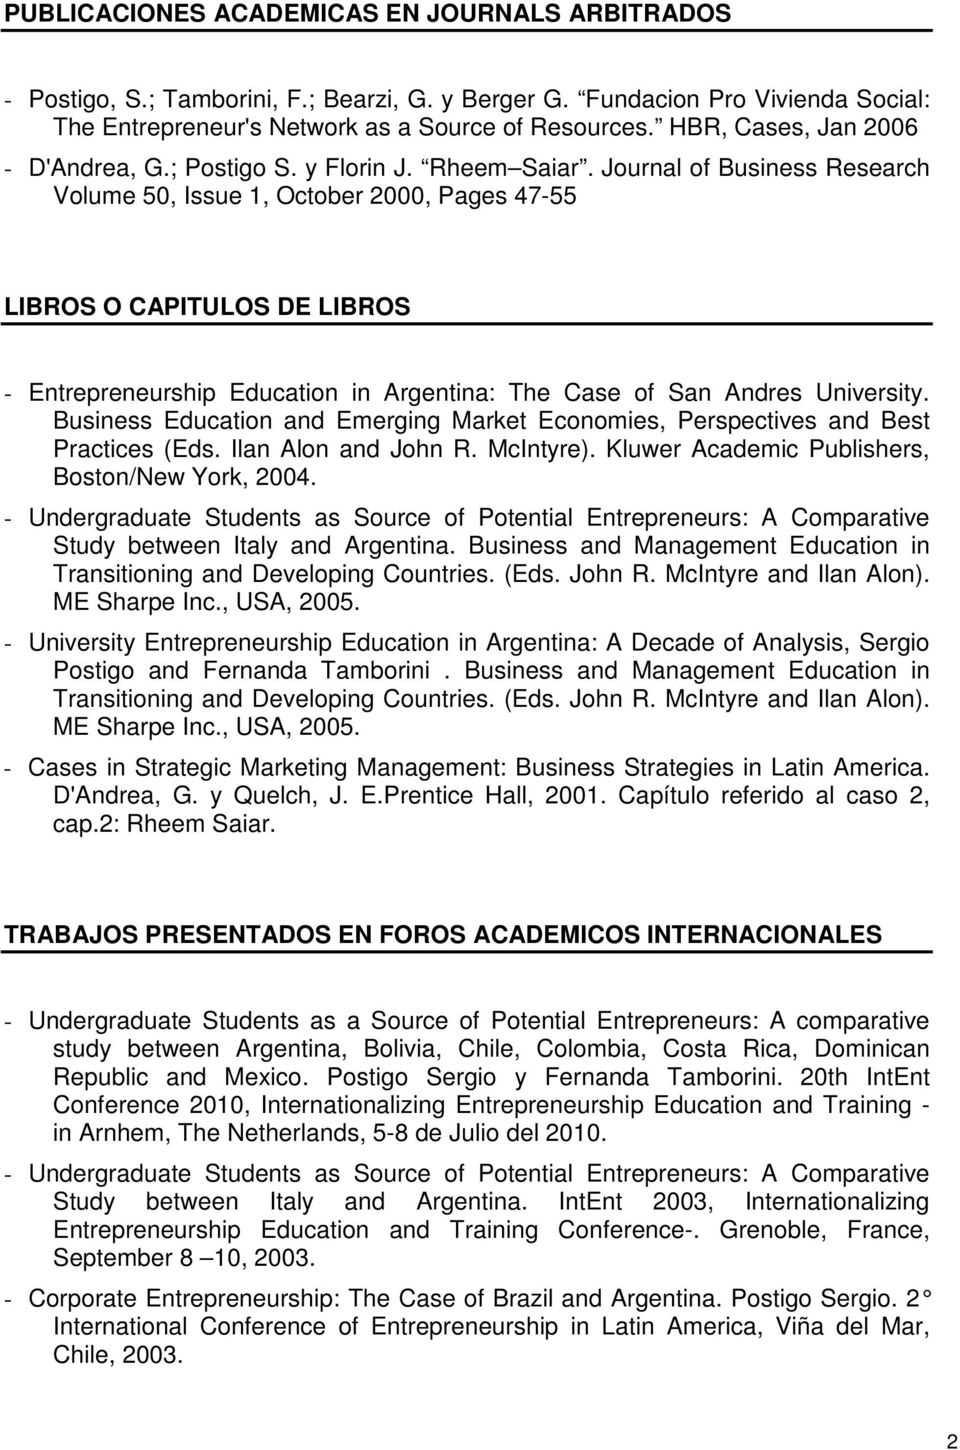 Journal of Business Research Volume 50, Issue 1, October 2000, Pages 47-55 LIBROS O CAPITULOS DE LIBROS - Entrepreneurship Education in Argentina: The Case of San Andres University.